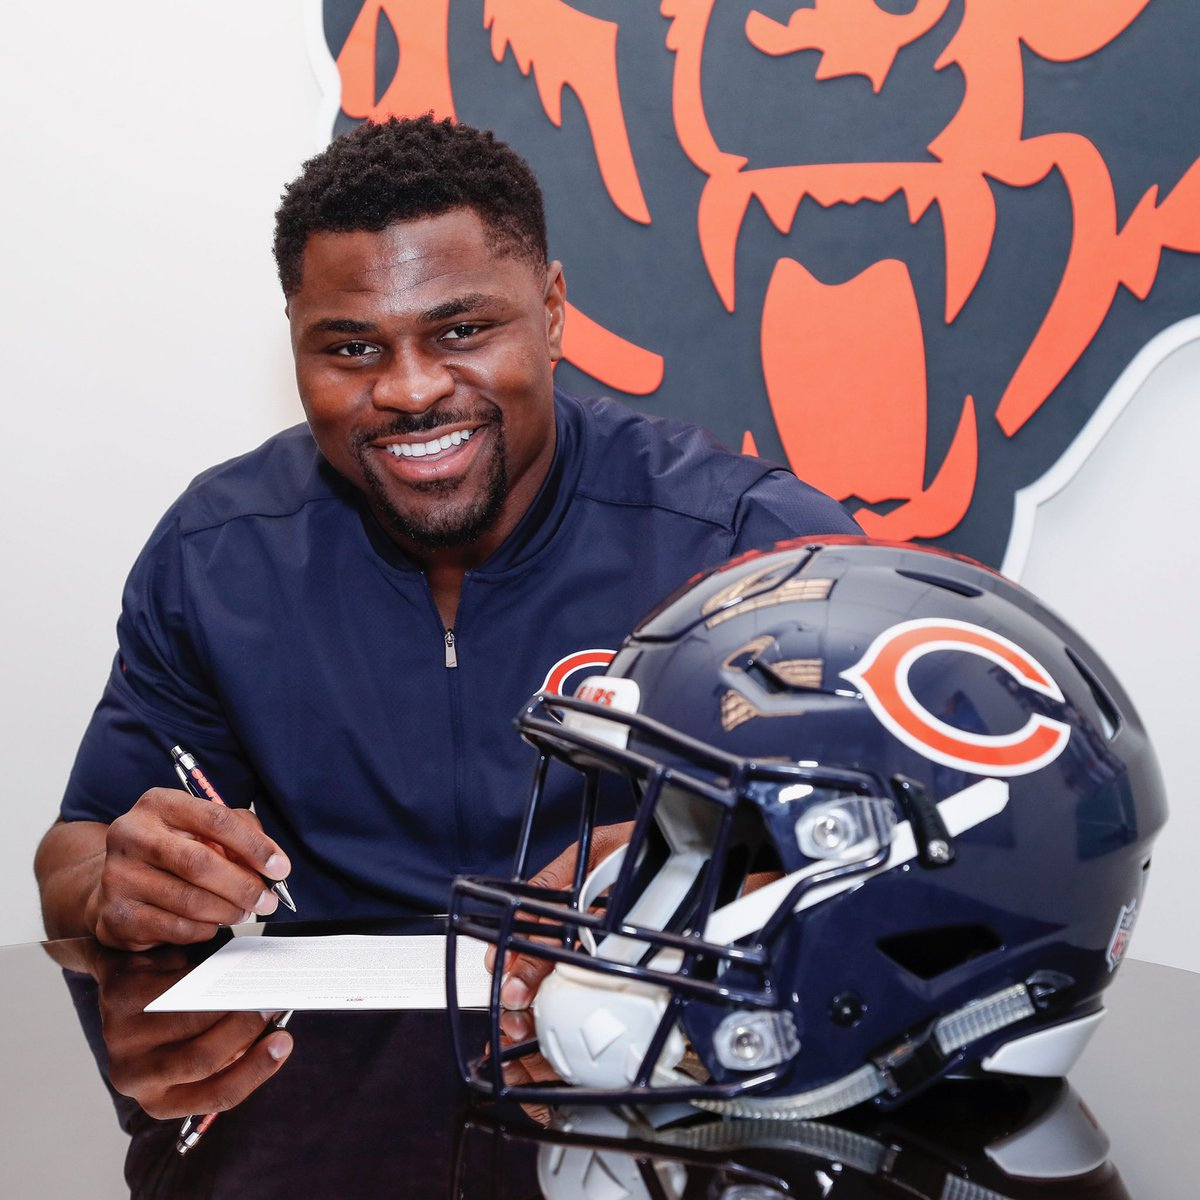 online retailer 48214 f2a19 Chicago Bears on Twitter: